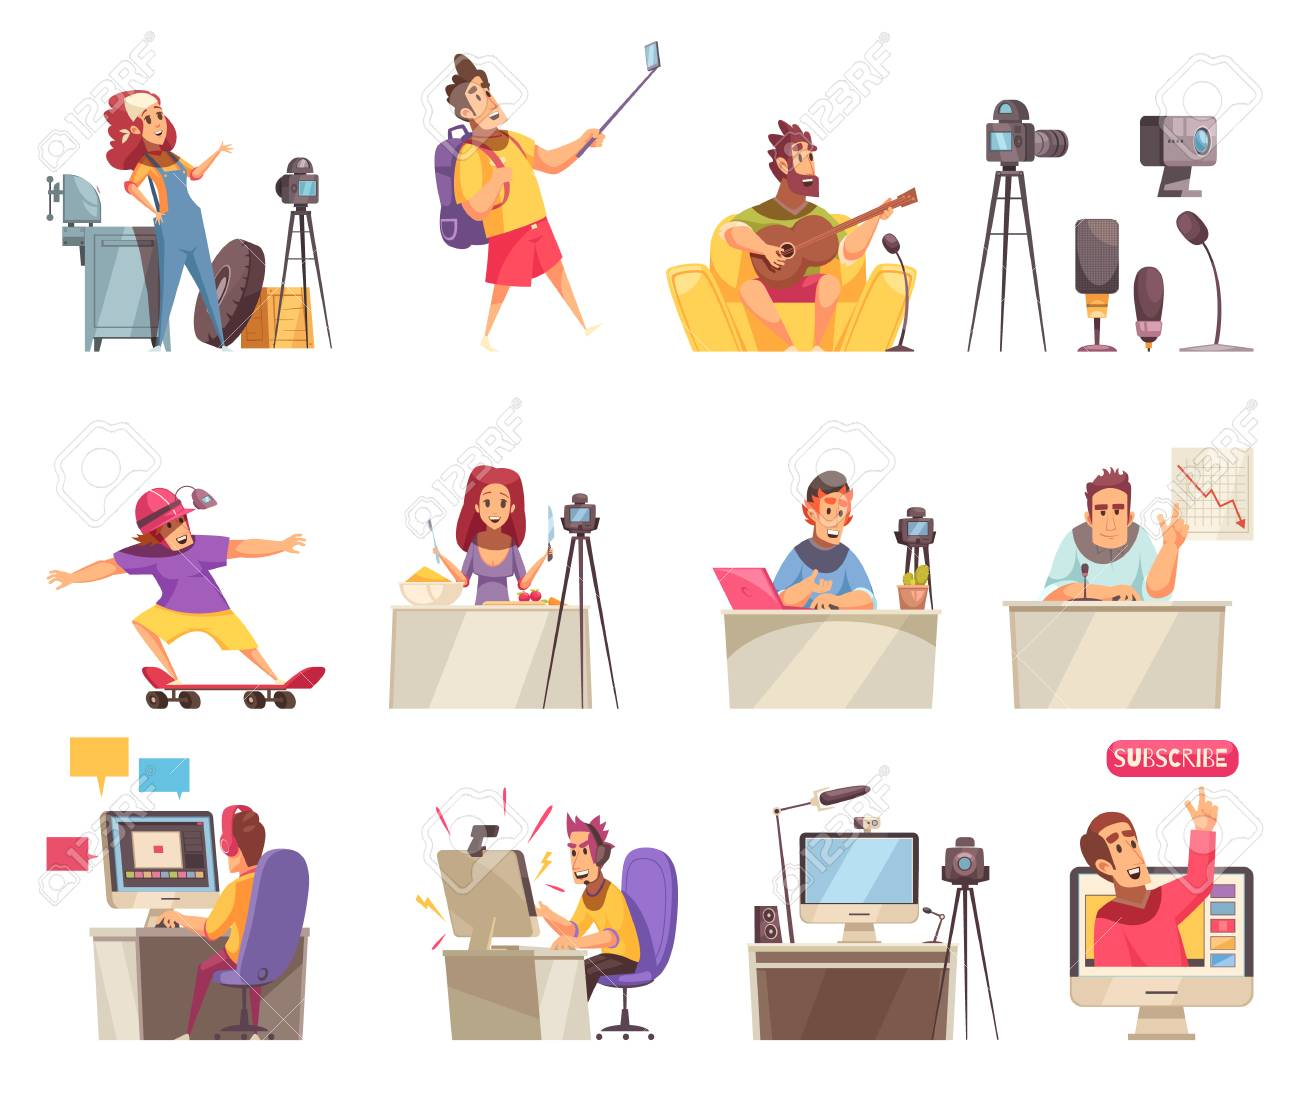 Blogger vlogger photo video blog set of isolated doodle style icons with human characters and pictograms vector illustration - 127413781